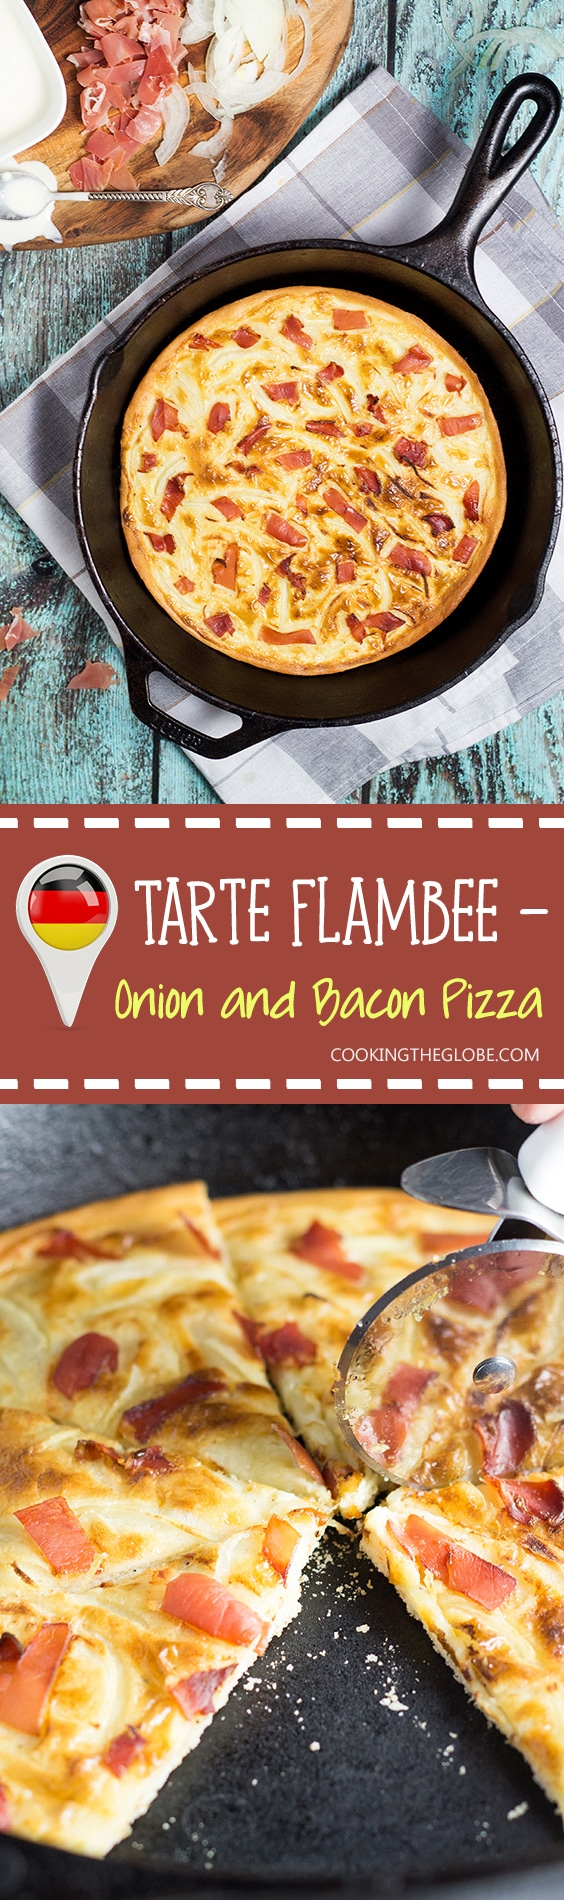 Tarte Flambee or Flammkuchen is a savory Alsatian pizza, topped with delicious sauce, onion and bacon!